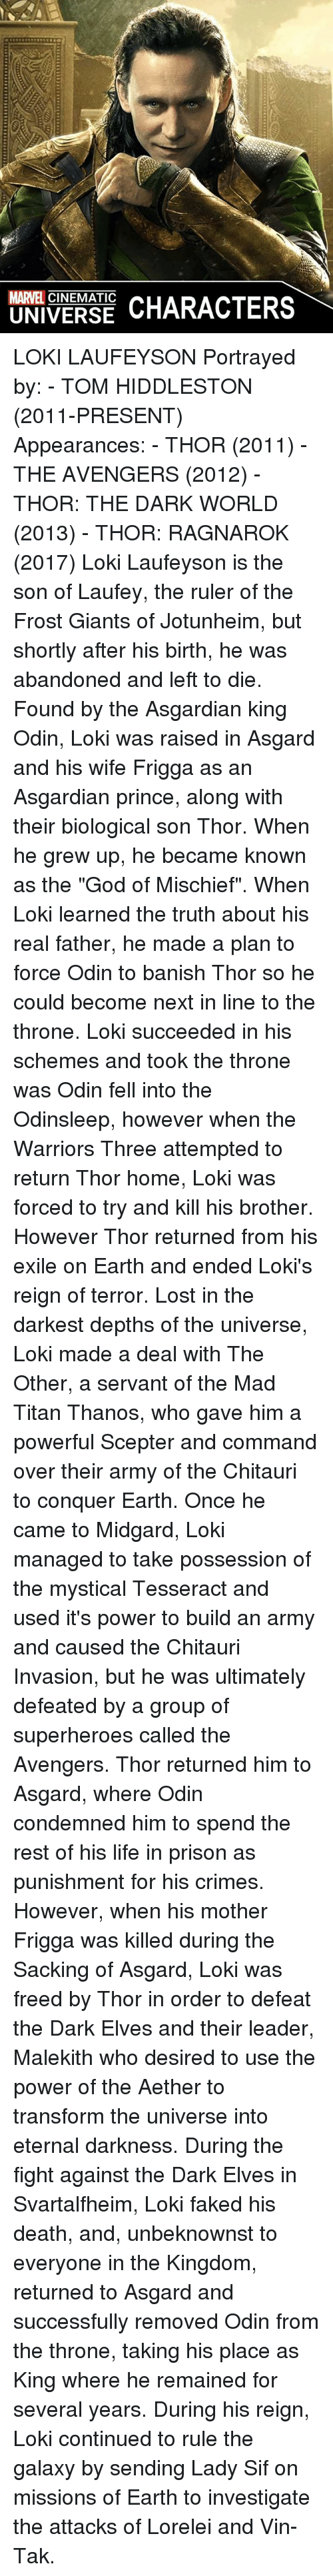 """banishes: MARVEL  CHARACTERS  UNIVERSE LOKI LAUFEYSON  Portrayed by: - TOM HIDDLESTON (2011-PRESENT)  Appearances: - THOR (2011) - THE AVENGERS (2012) - THOR: THE DARK WORLD (2013) - THOR: RAGNAROK (2017)  Loki Laufeyson is the son of Laufey, the ruler of the Frost Giants of Jotunheim, but shortly after his birth, he was abandoned and left to die. Found by the Asgardian king Odin, Loki was raised in Asgard and his wife Frigga as an Asgardian prince, along with their biological son Thor. When he grew up, he became known as the """"God of Mischief"""". When Loki learned the truth about his real father, he made a plan to force Odin to banish Thor so he could become next in line to the throne. Loki succeeded in his schemes and took the throne was Odin fell into the Odinsleep, however when the Warriors Three attempted to return Thor home, Loki was forced to try and kill his brother. However Thor returned from his exile on Earth and ended Loki's reign of terror.  Lost in the darkest depths of the universe, Loki made a deal with The Other, a servant of the Mad Titan Thanos, who gave him a powerful Scepter and command over their army of the Chitauri to conquer Earth. Once he came to Midgard, Loki managed to take possession of the mystical Tesseract and used it's power to build an army and caused the Chitauri Invasion, but he was ultimately defeated by a group of superheroes called the Avengers. Thor returned him to Asgard, where Odin condemned him to spend the rest of his life in prison as punishment for his crimes.  However, when his mother Frigga was killed during the Sacking of Asgard, Loki was freed by Thor in order to defeat the Dark Elves and their leader, Malekith who desired to use the power of the Aether to transform the universe into eternal darkness. During the fight against the Dark Elves in Svartalfheim, Loki faked his death, and, unbeknownst to everyone in the Kingdom, returned to Asgard and successfully removed Odin from the throne, taking his place as King where h"""